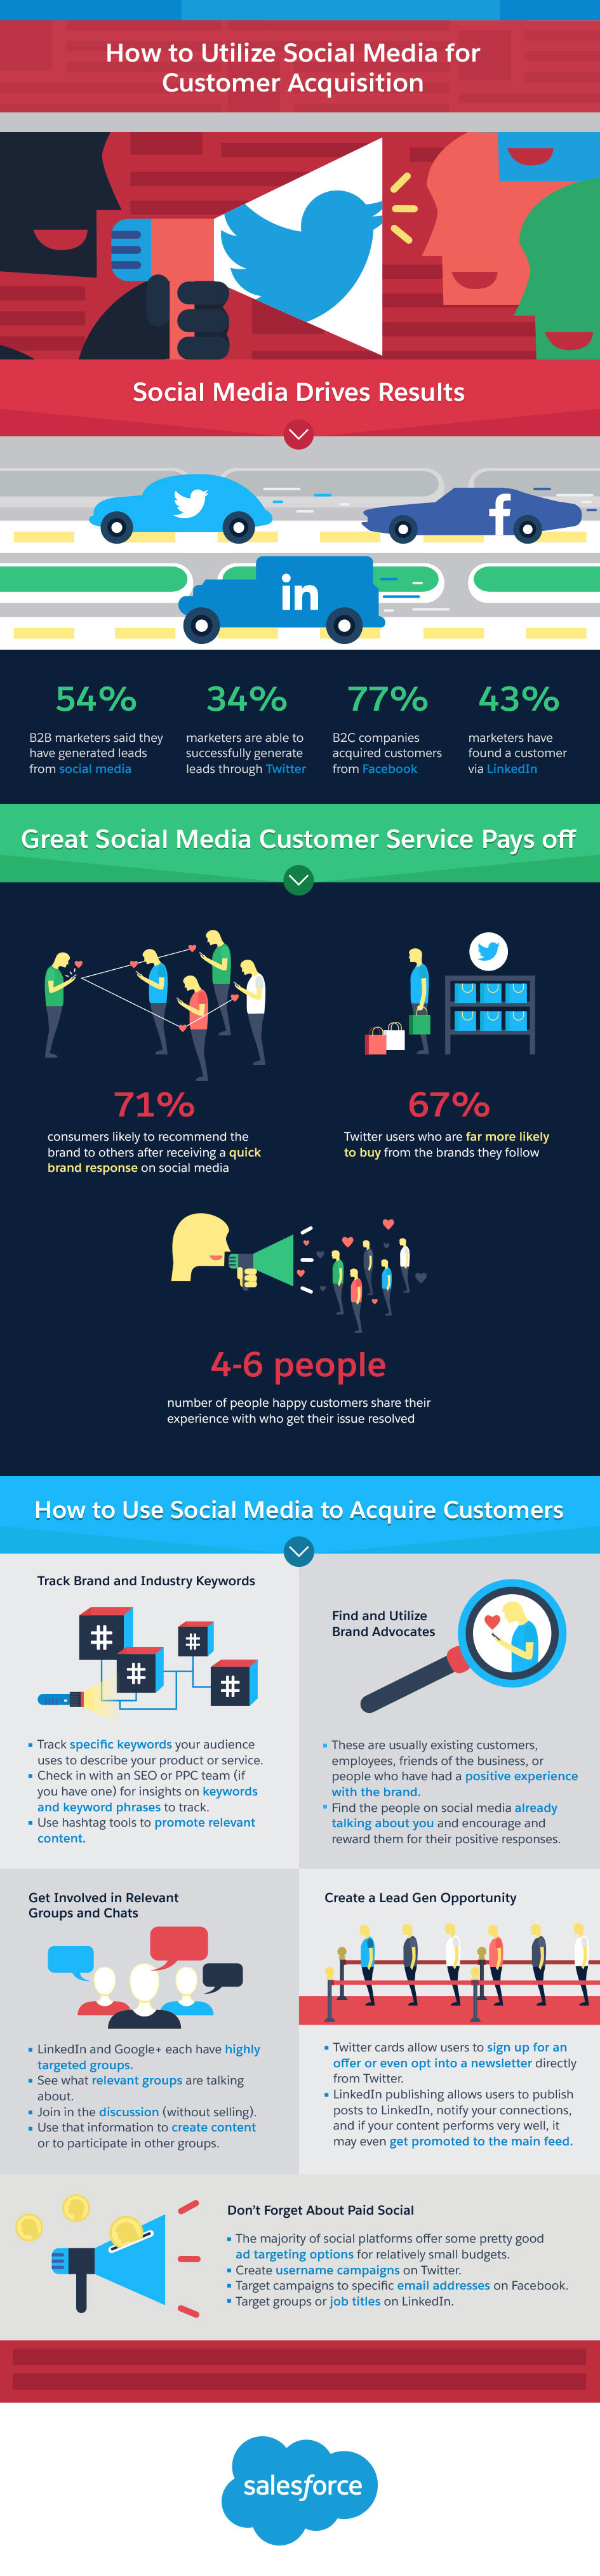 How to Utilize Social Media for Customer Acquisition - #infographic